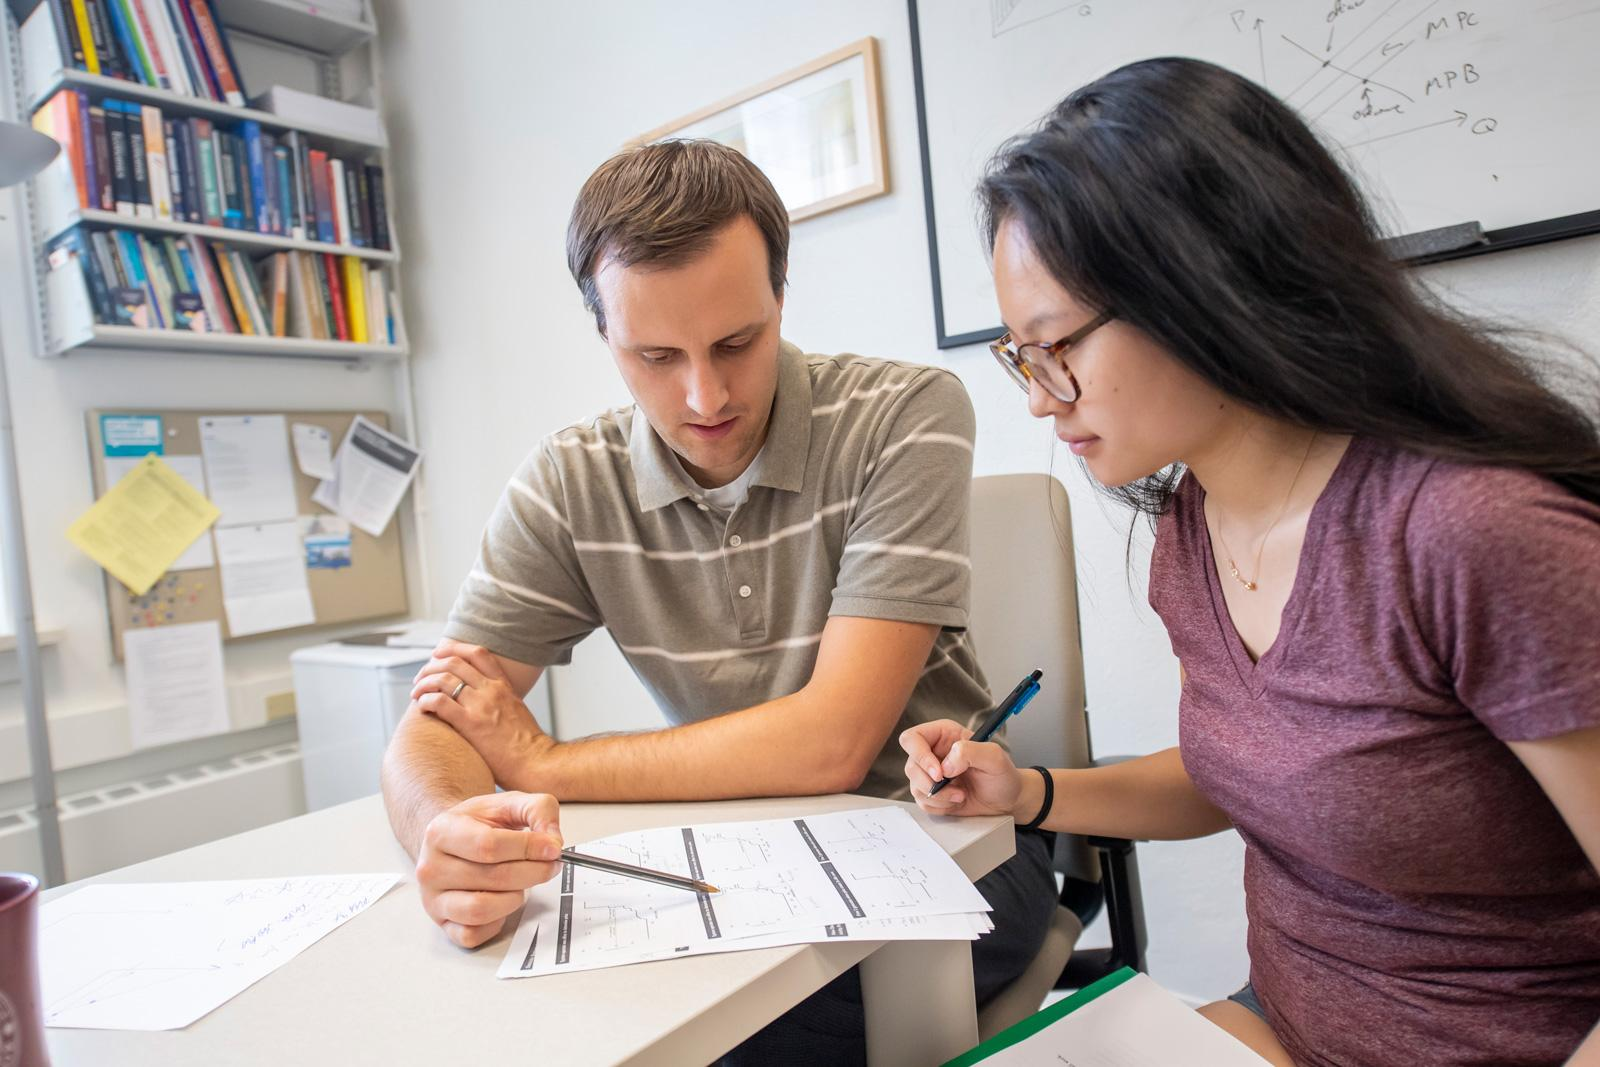 A professor and student review a document in the professor's office.